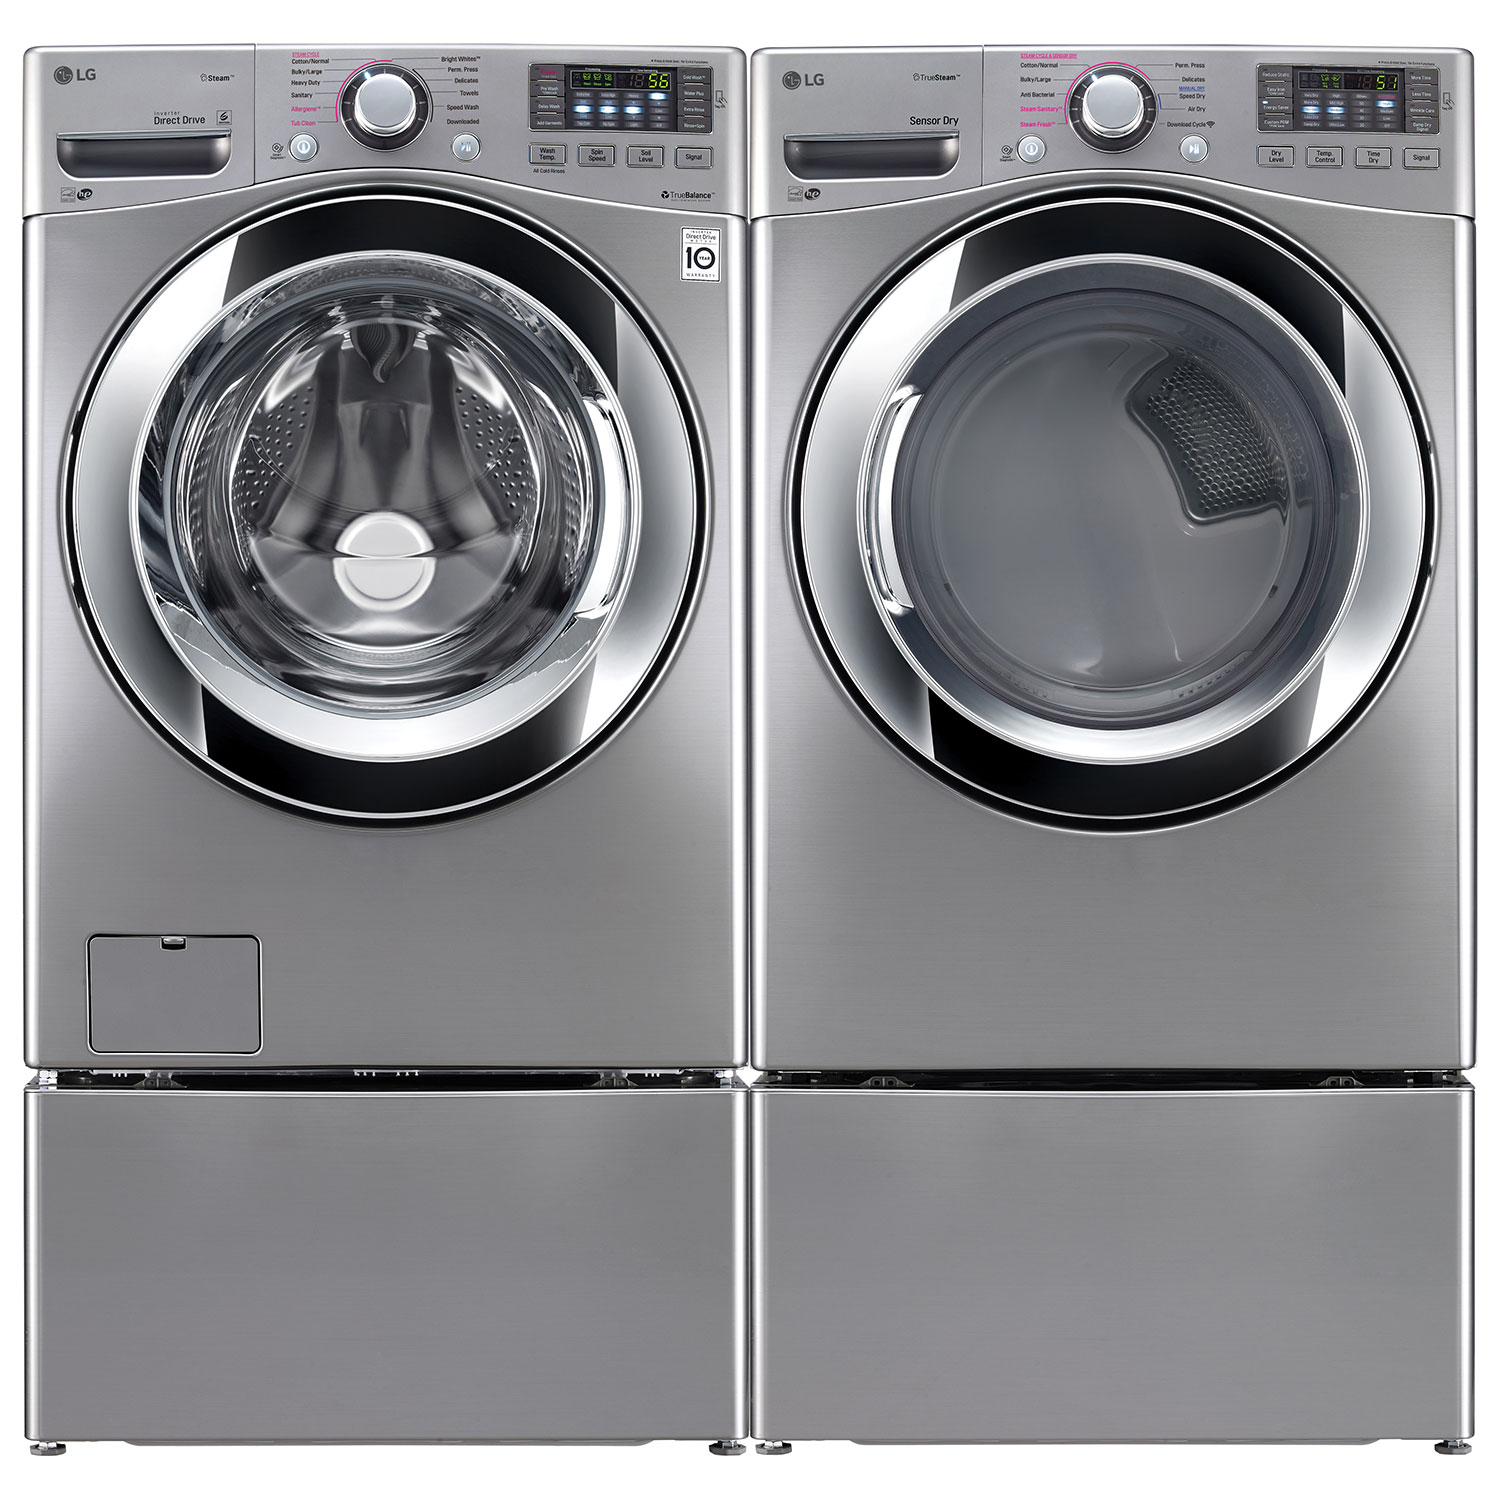 Best Price On Front Load Washer And Dryer Lg 52 Cu Ft High Efficiency Front Load Steam Washer Wm3670hva